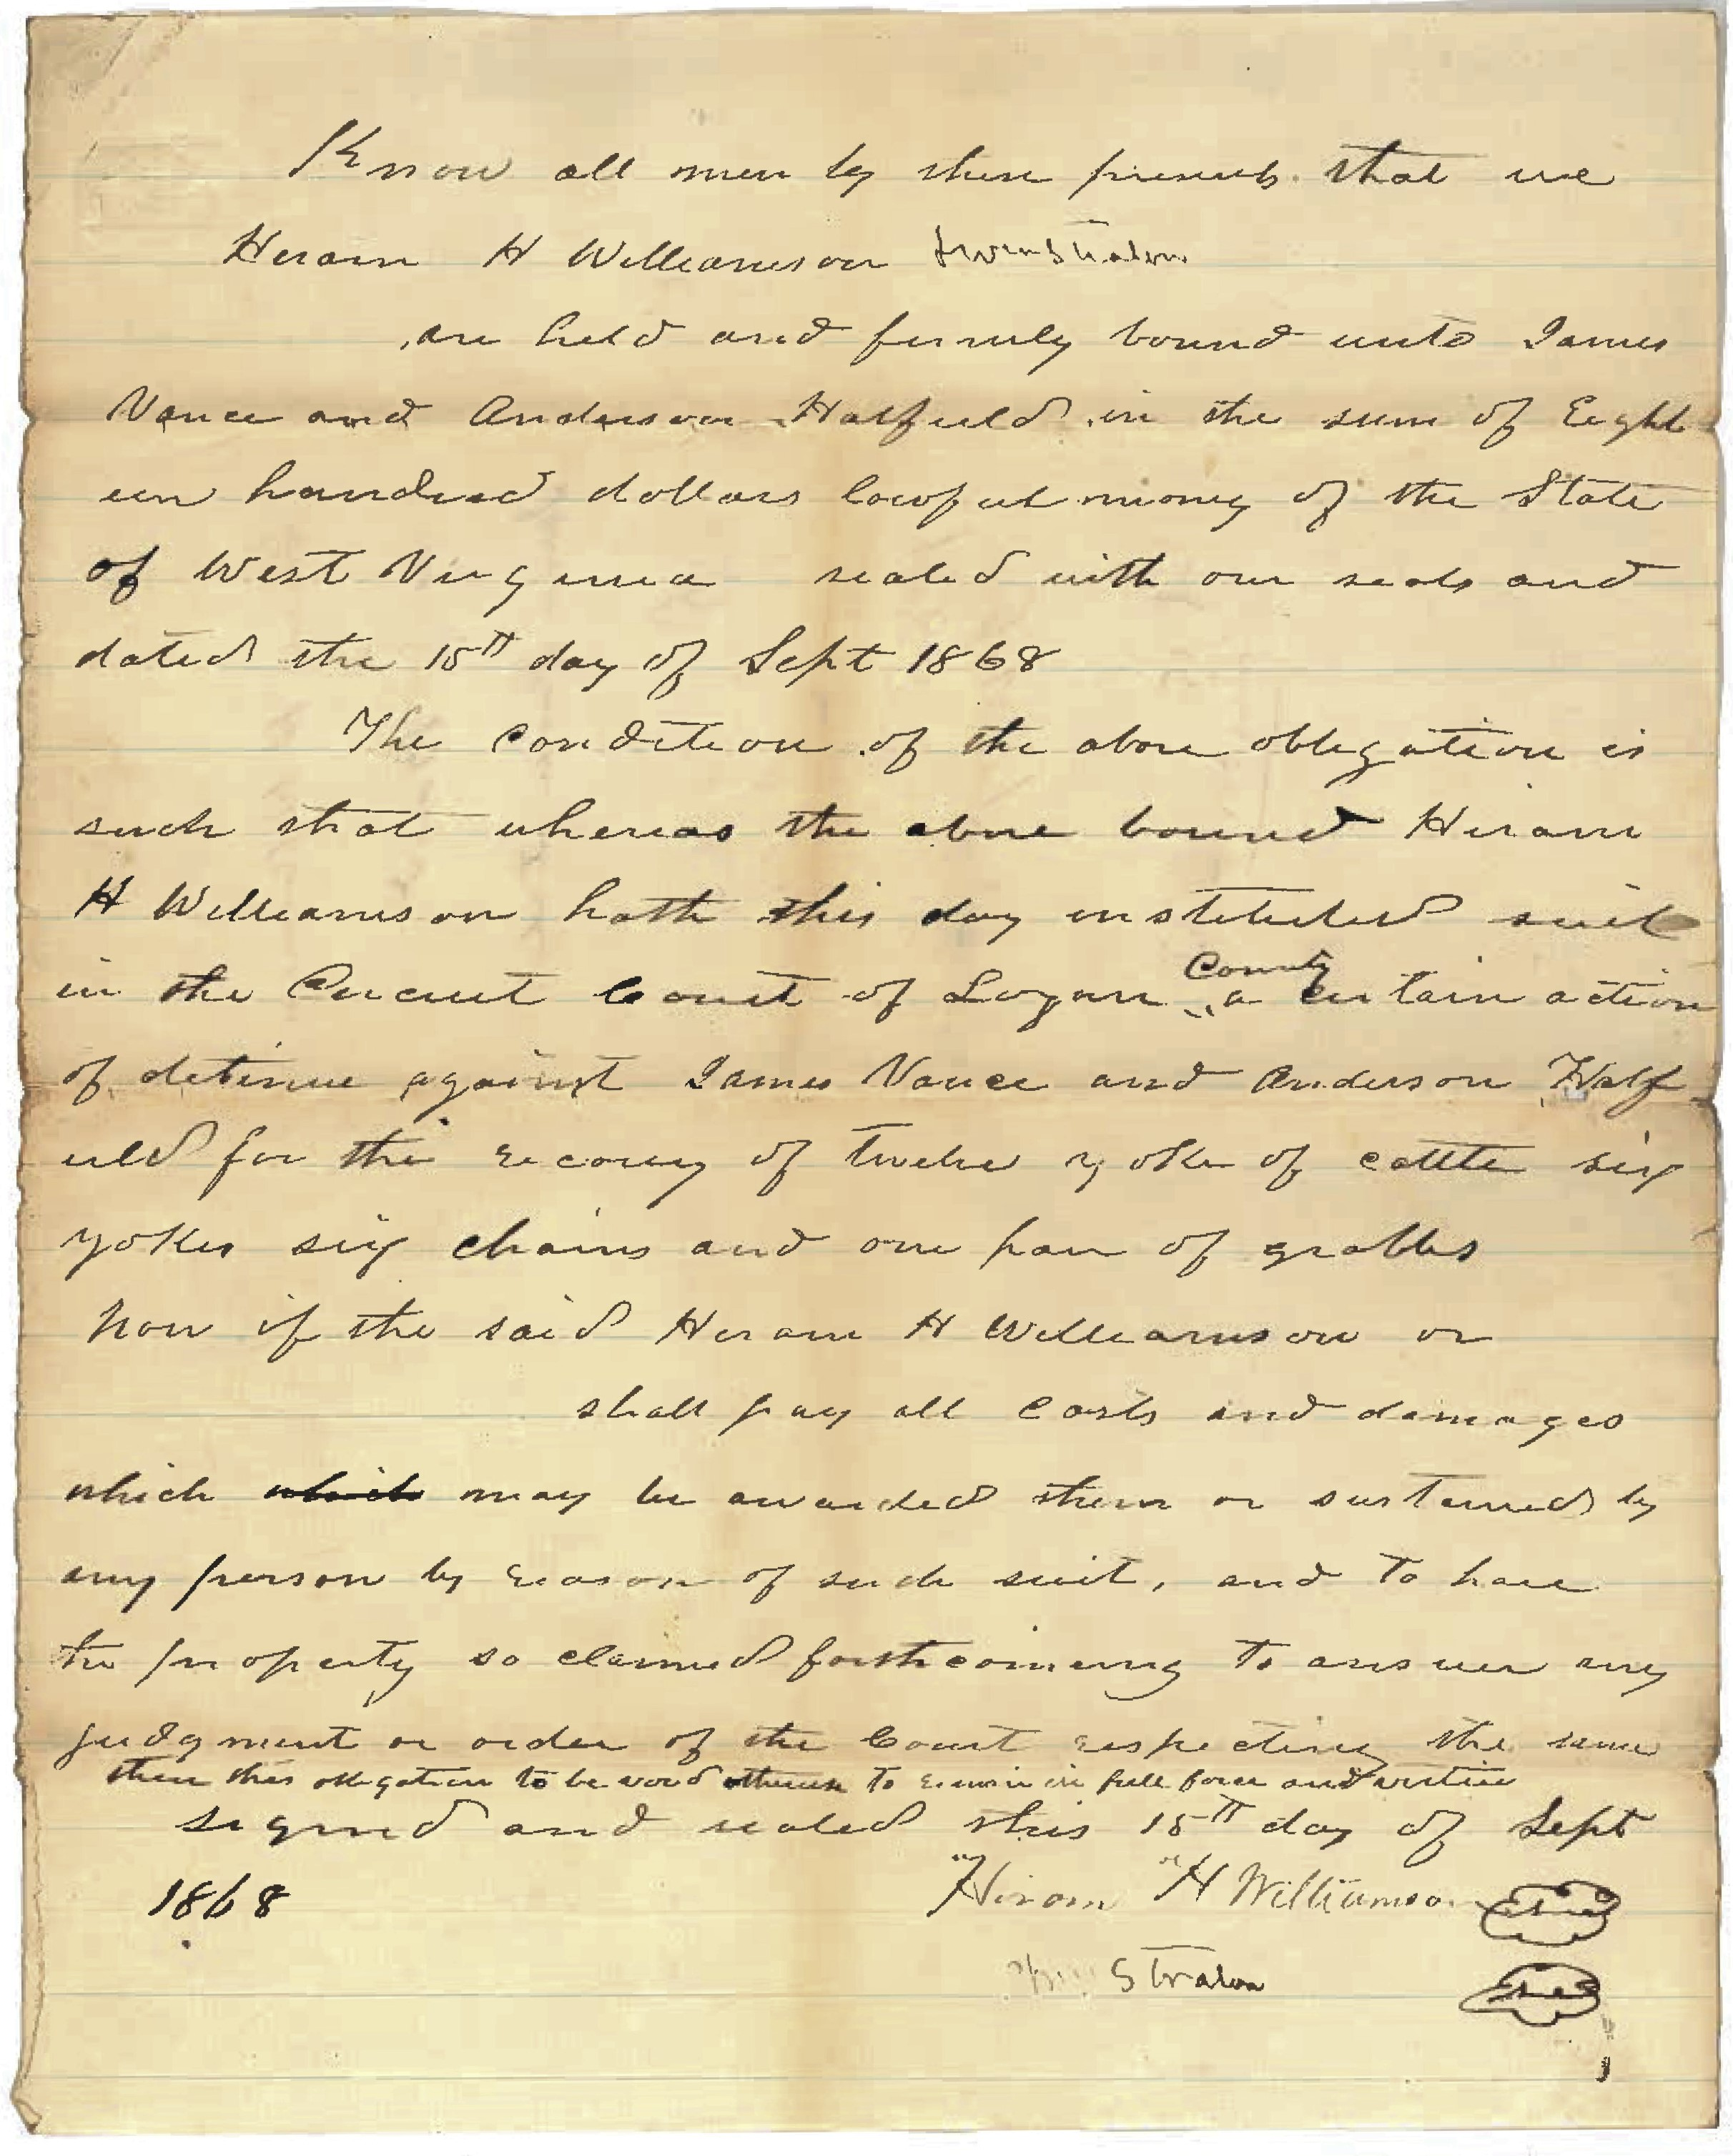 Anderson Hatfield and James Vance Document 1868 1